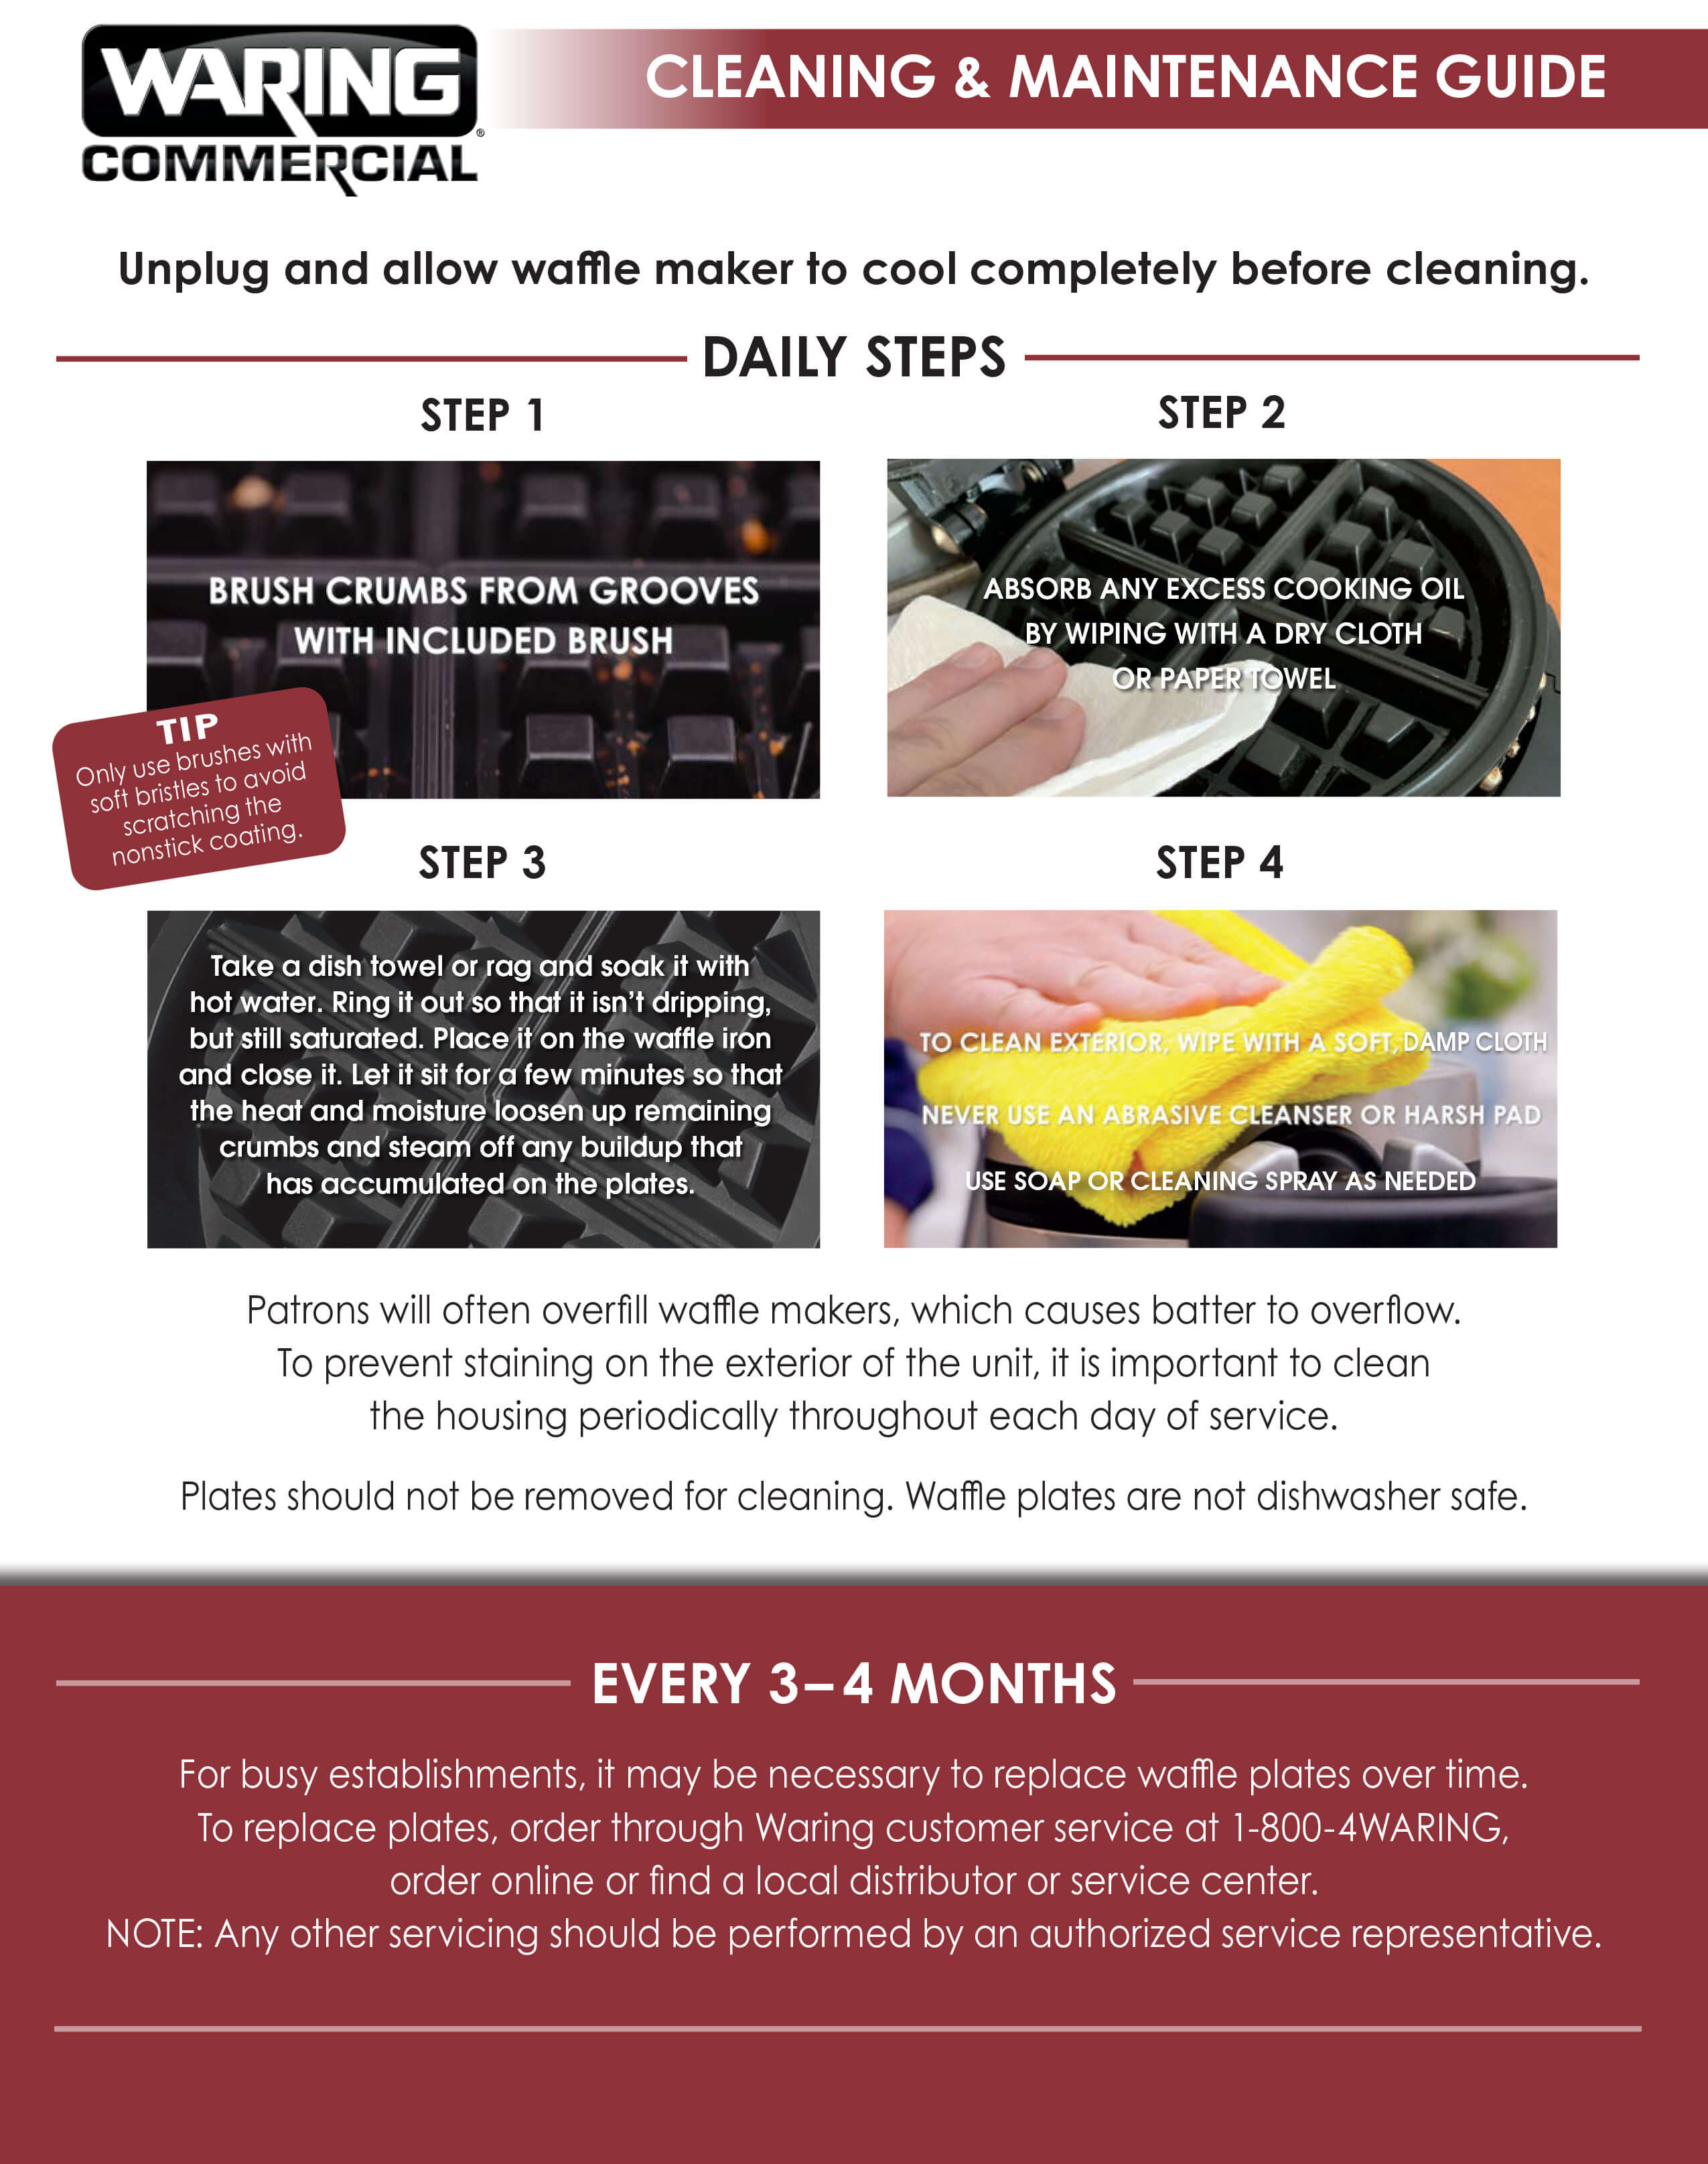 Waring - Waffle Maker Cleaning & Mantenance Guide